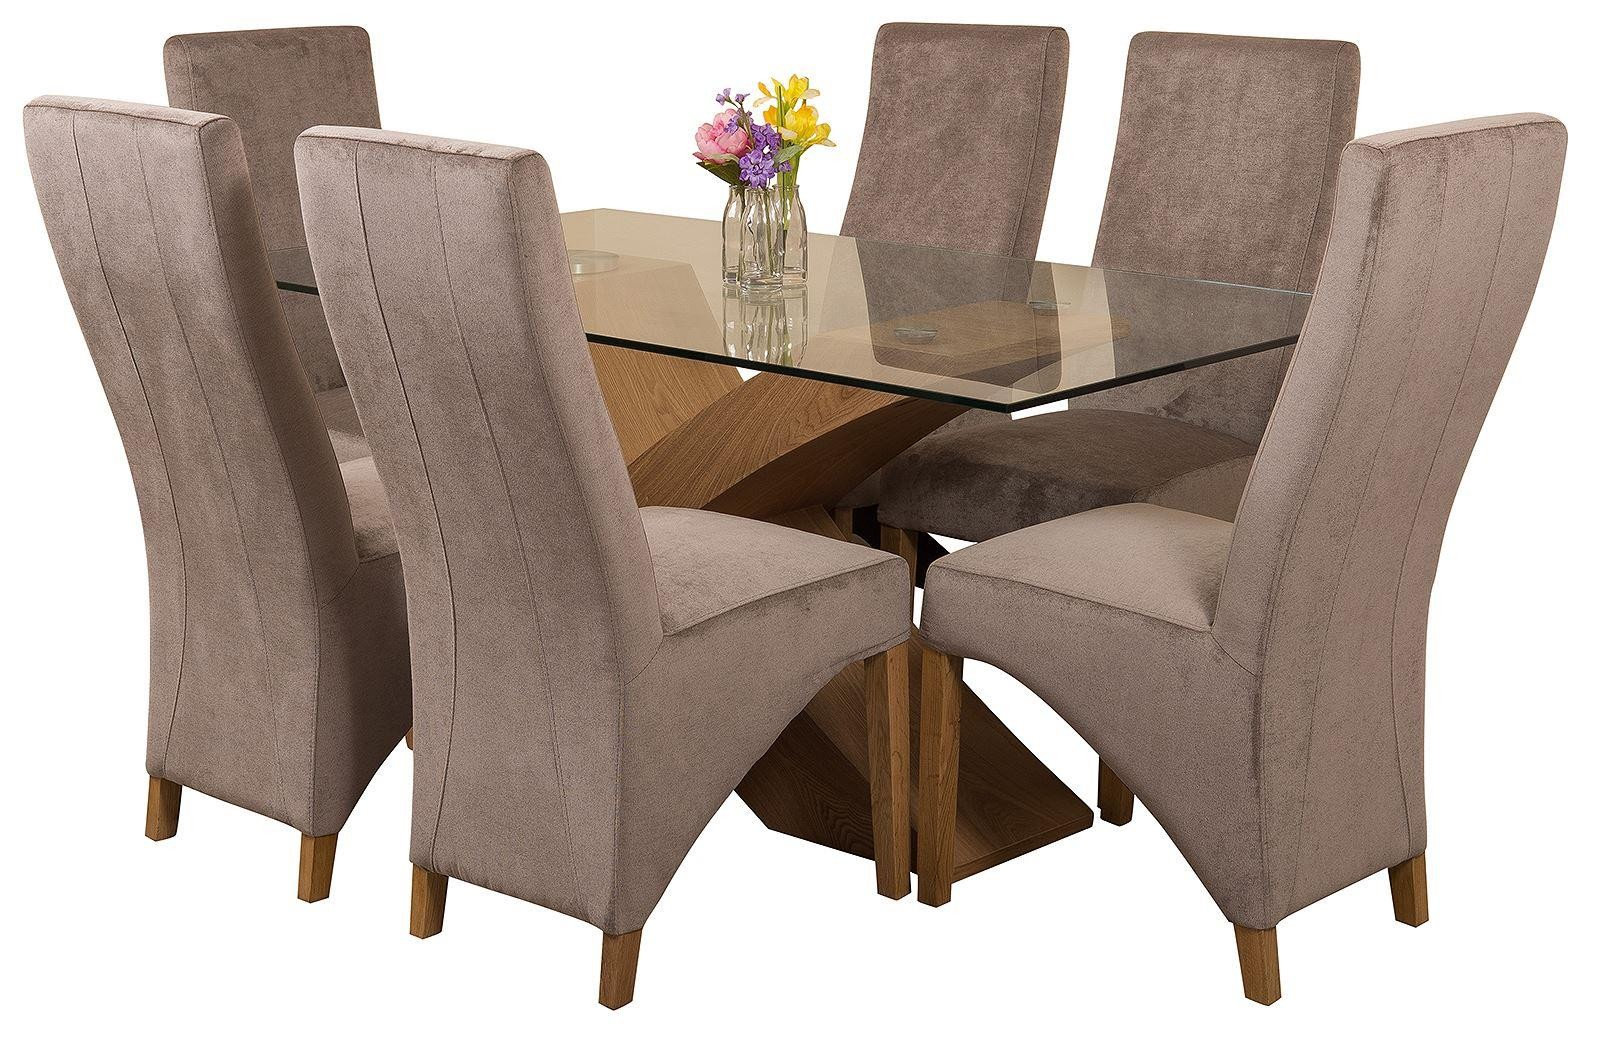 Valencia Oak 160cm Wood and Glass Dining Table with 6 Lola Dining Chairs [Grey Fabric]